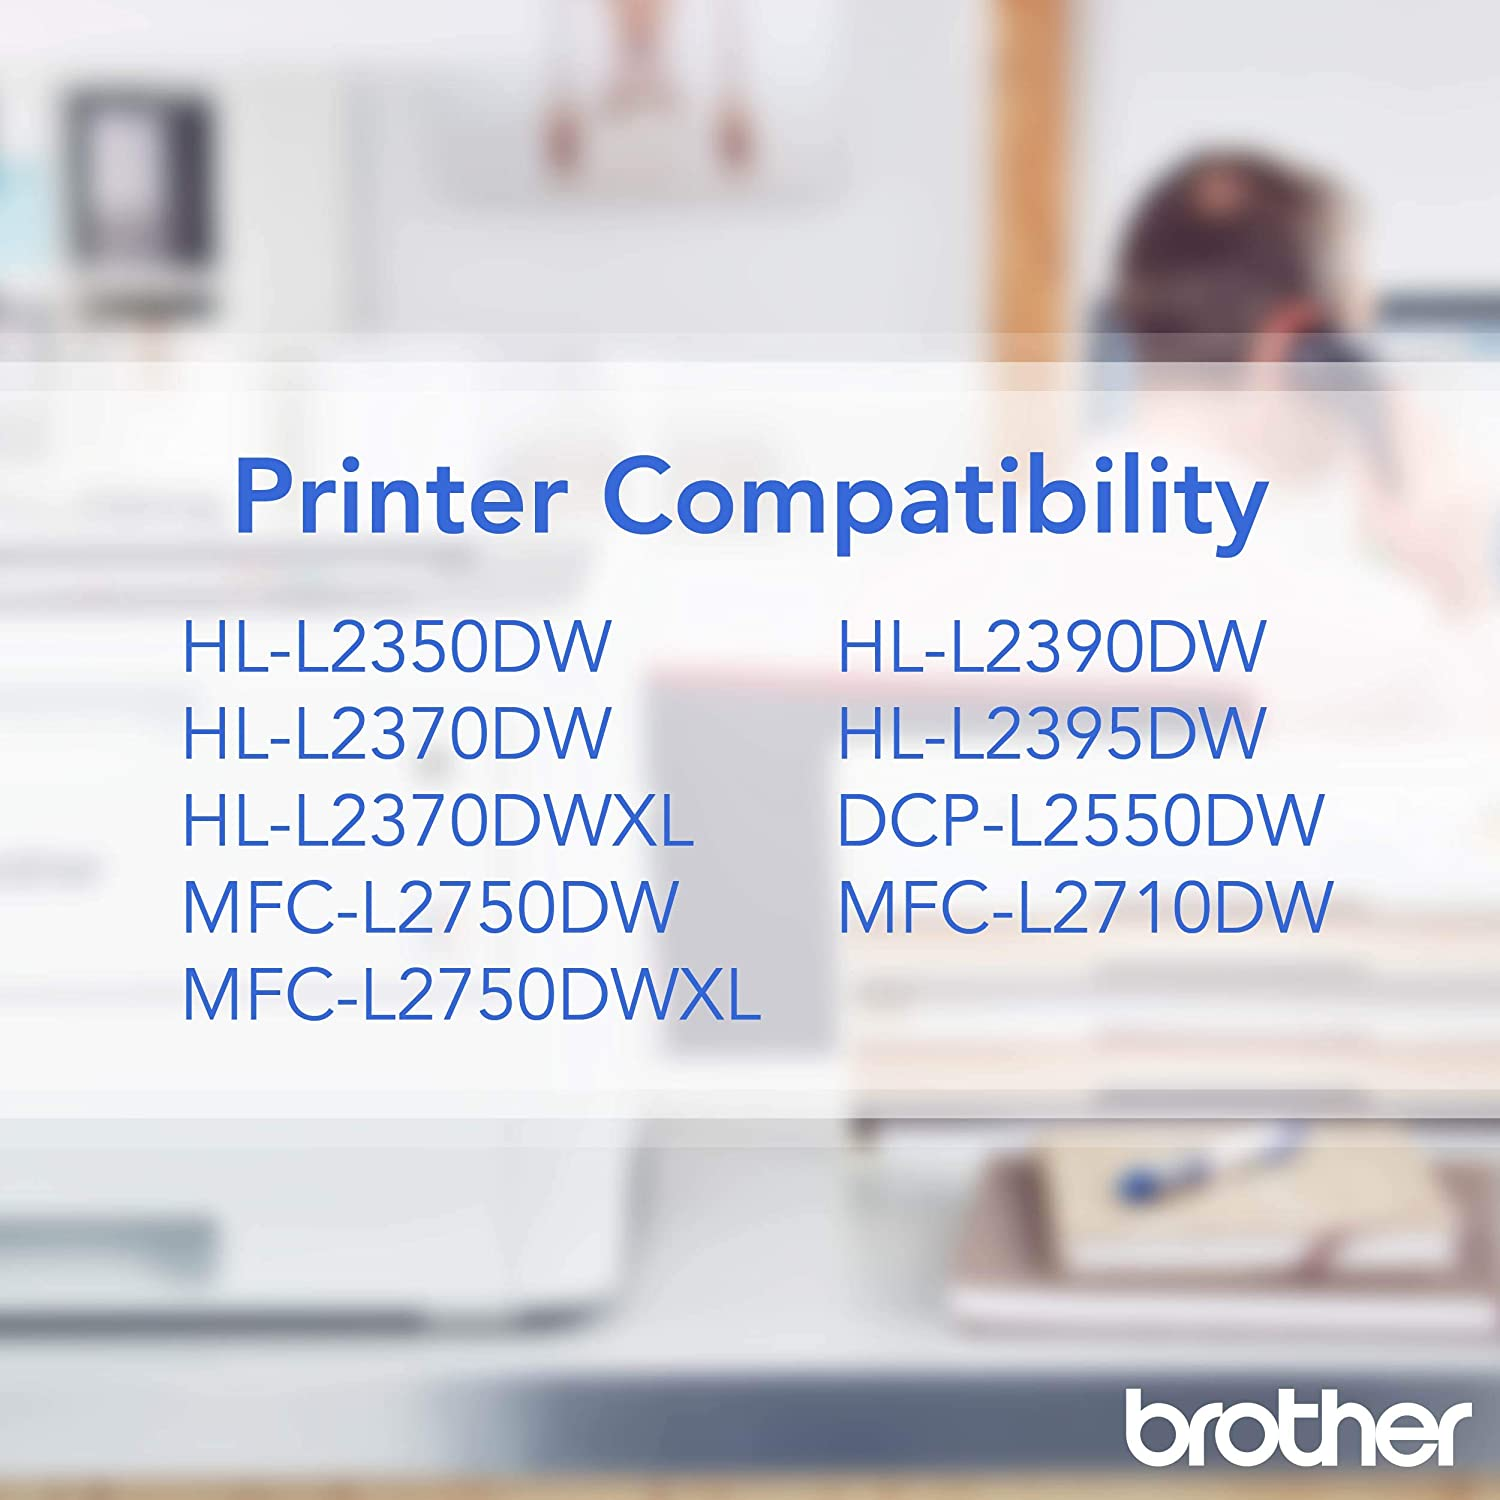 Brother TN-730 DCP-L2510 L2530 L2550 HL-L2310 L2350 L2370 L2375 L2390 MFC-L2710 L2713 L2715 L2717 L2730 L2750 Toner Catridge (Black) in Retail ...